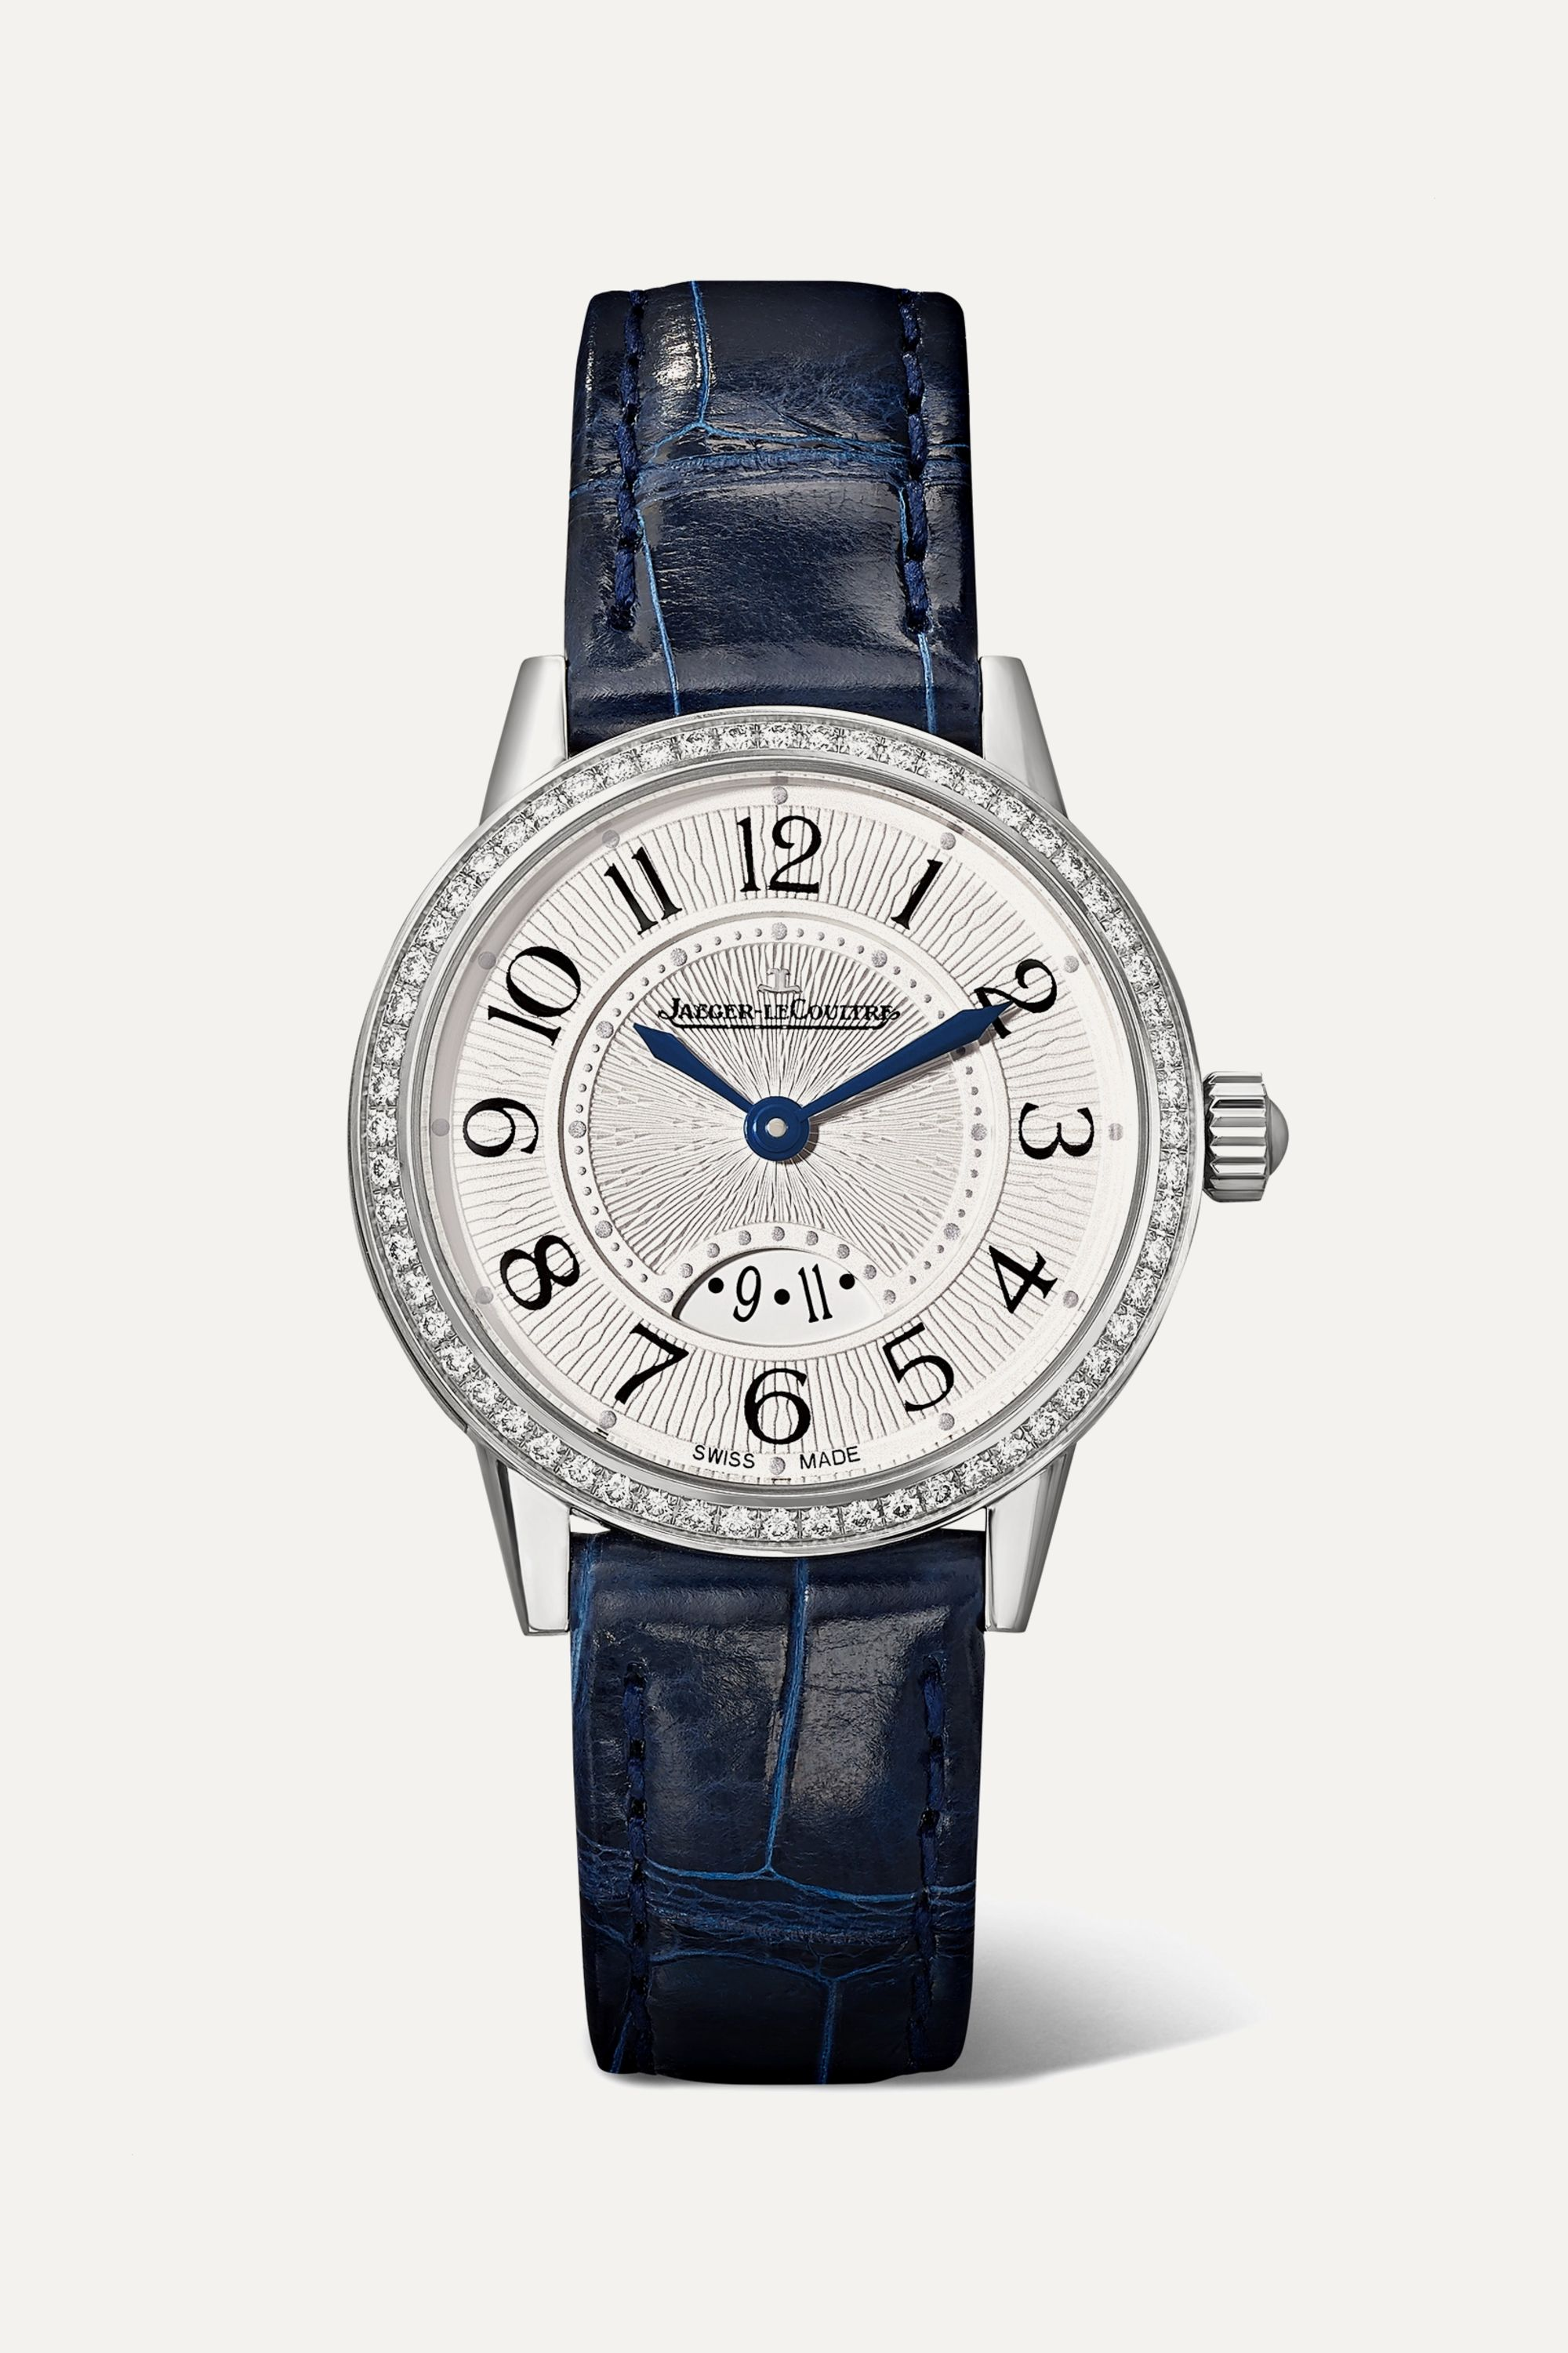 Jaeger-LeCoultre Rendez-Vous Date Small Quartz 29mm stainless steel, alligator and diamond watch